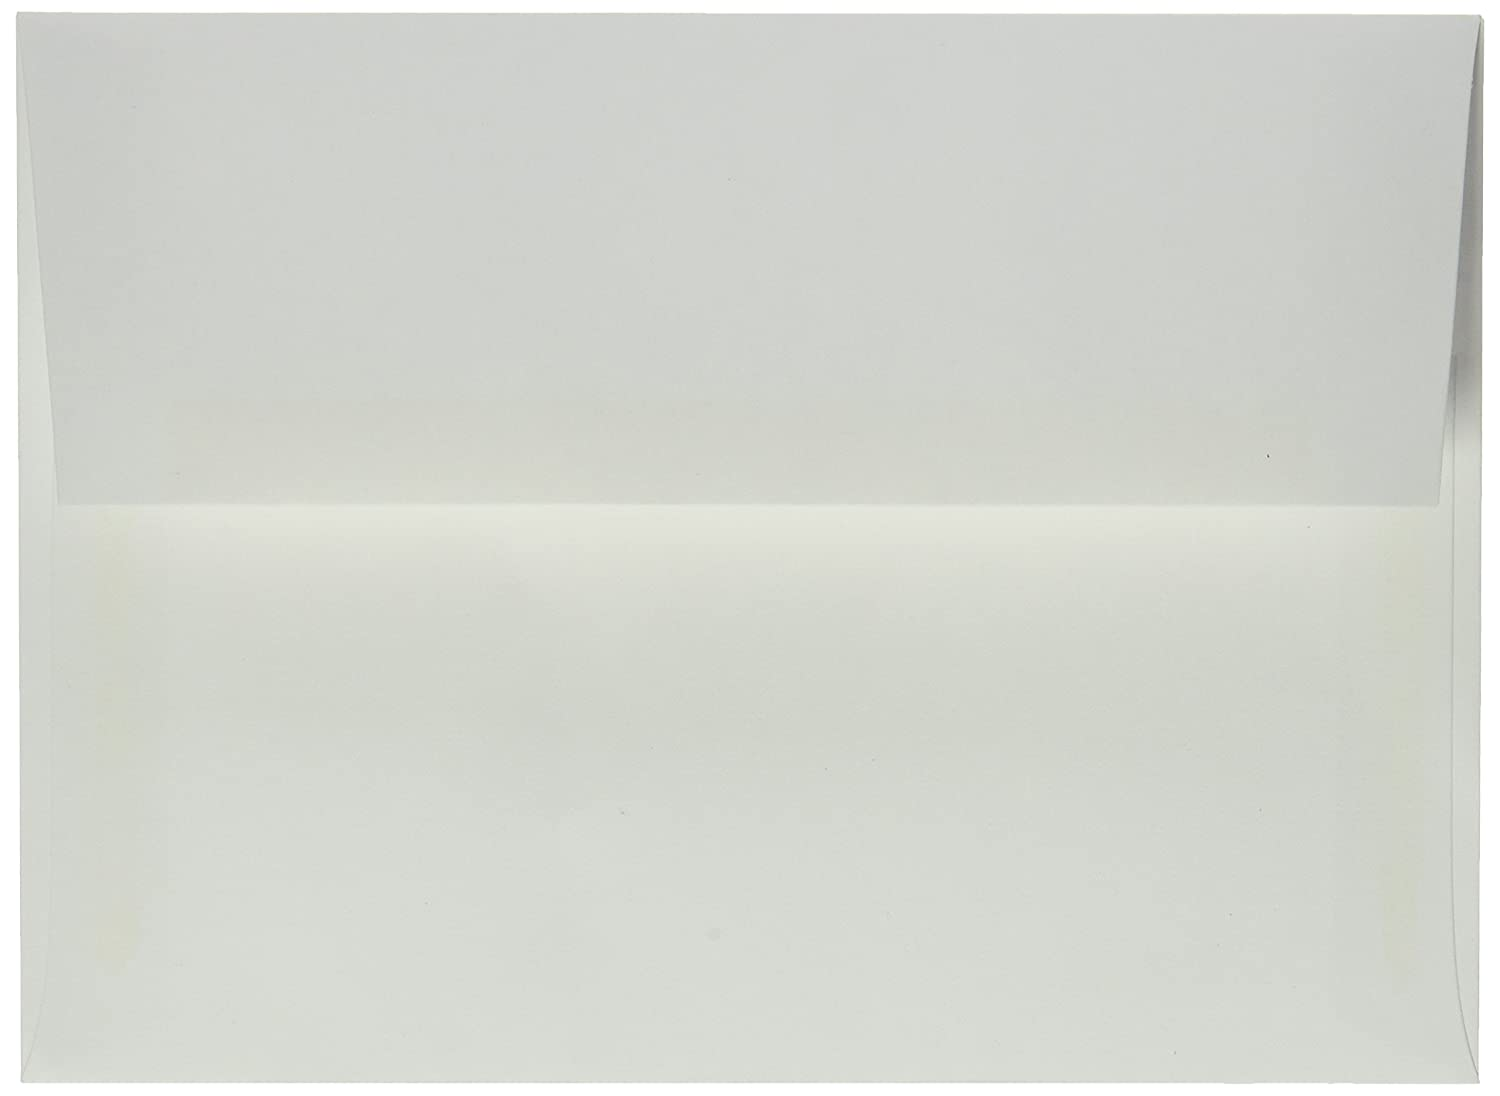 Strokes Office Supplies Envelopes, Pack of 25 (A7WHITE-25) 30%OFF